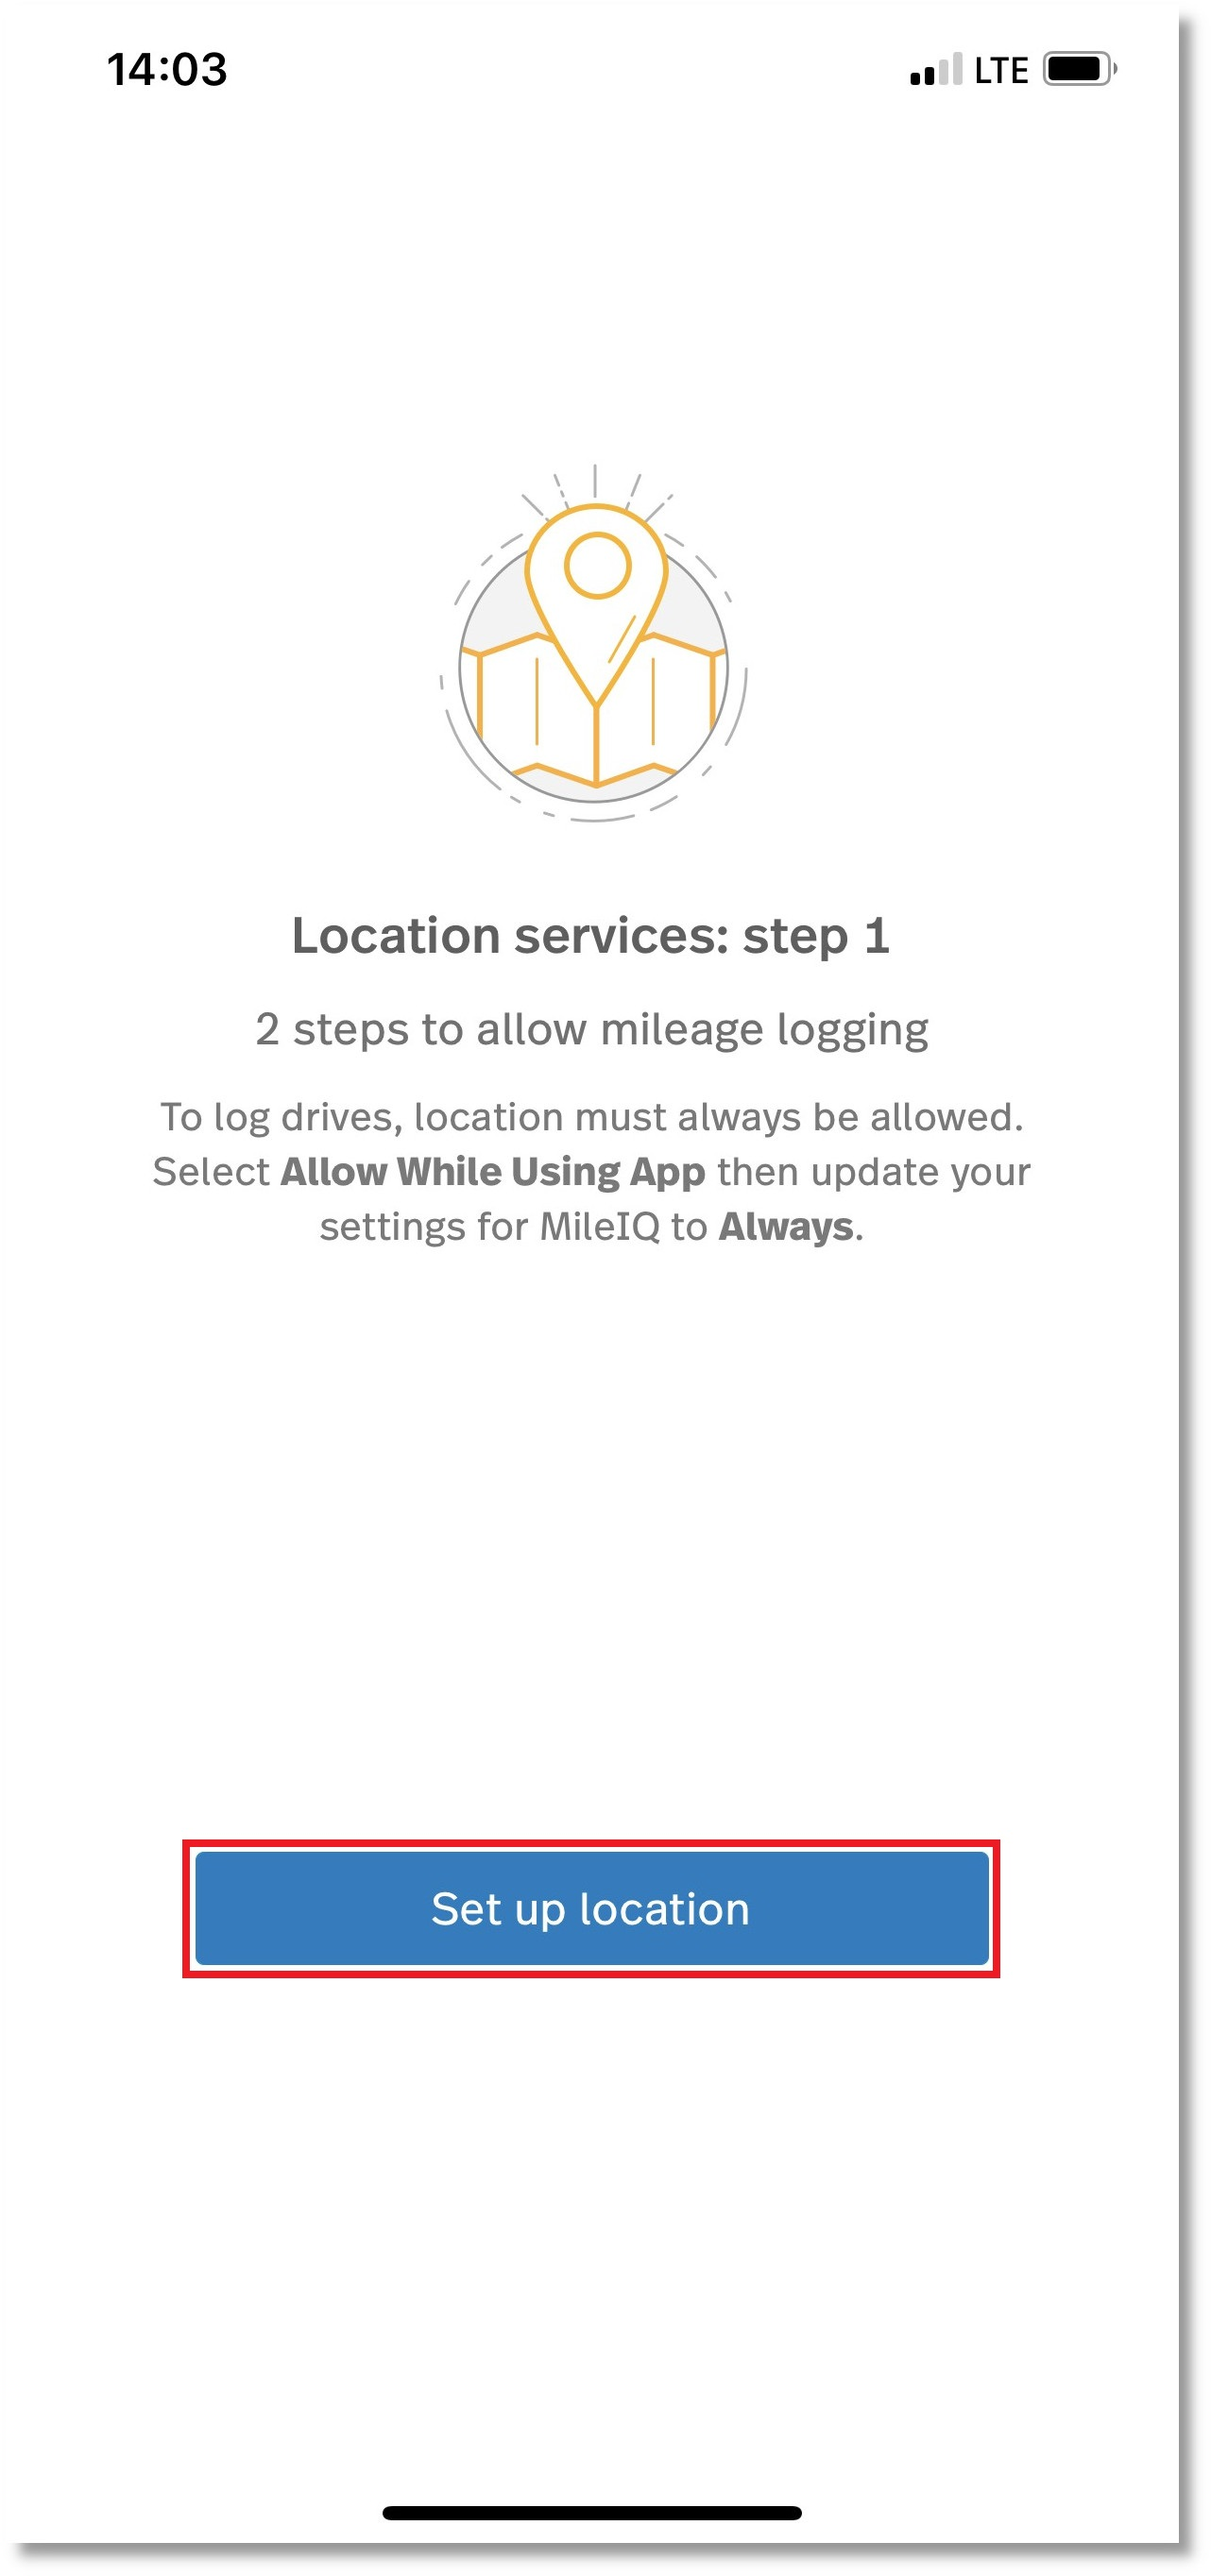 Screenshot of the location services: step 1 screen within MileIQ